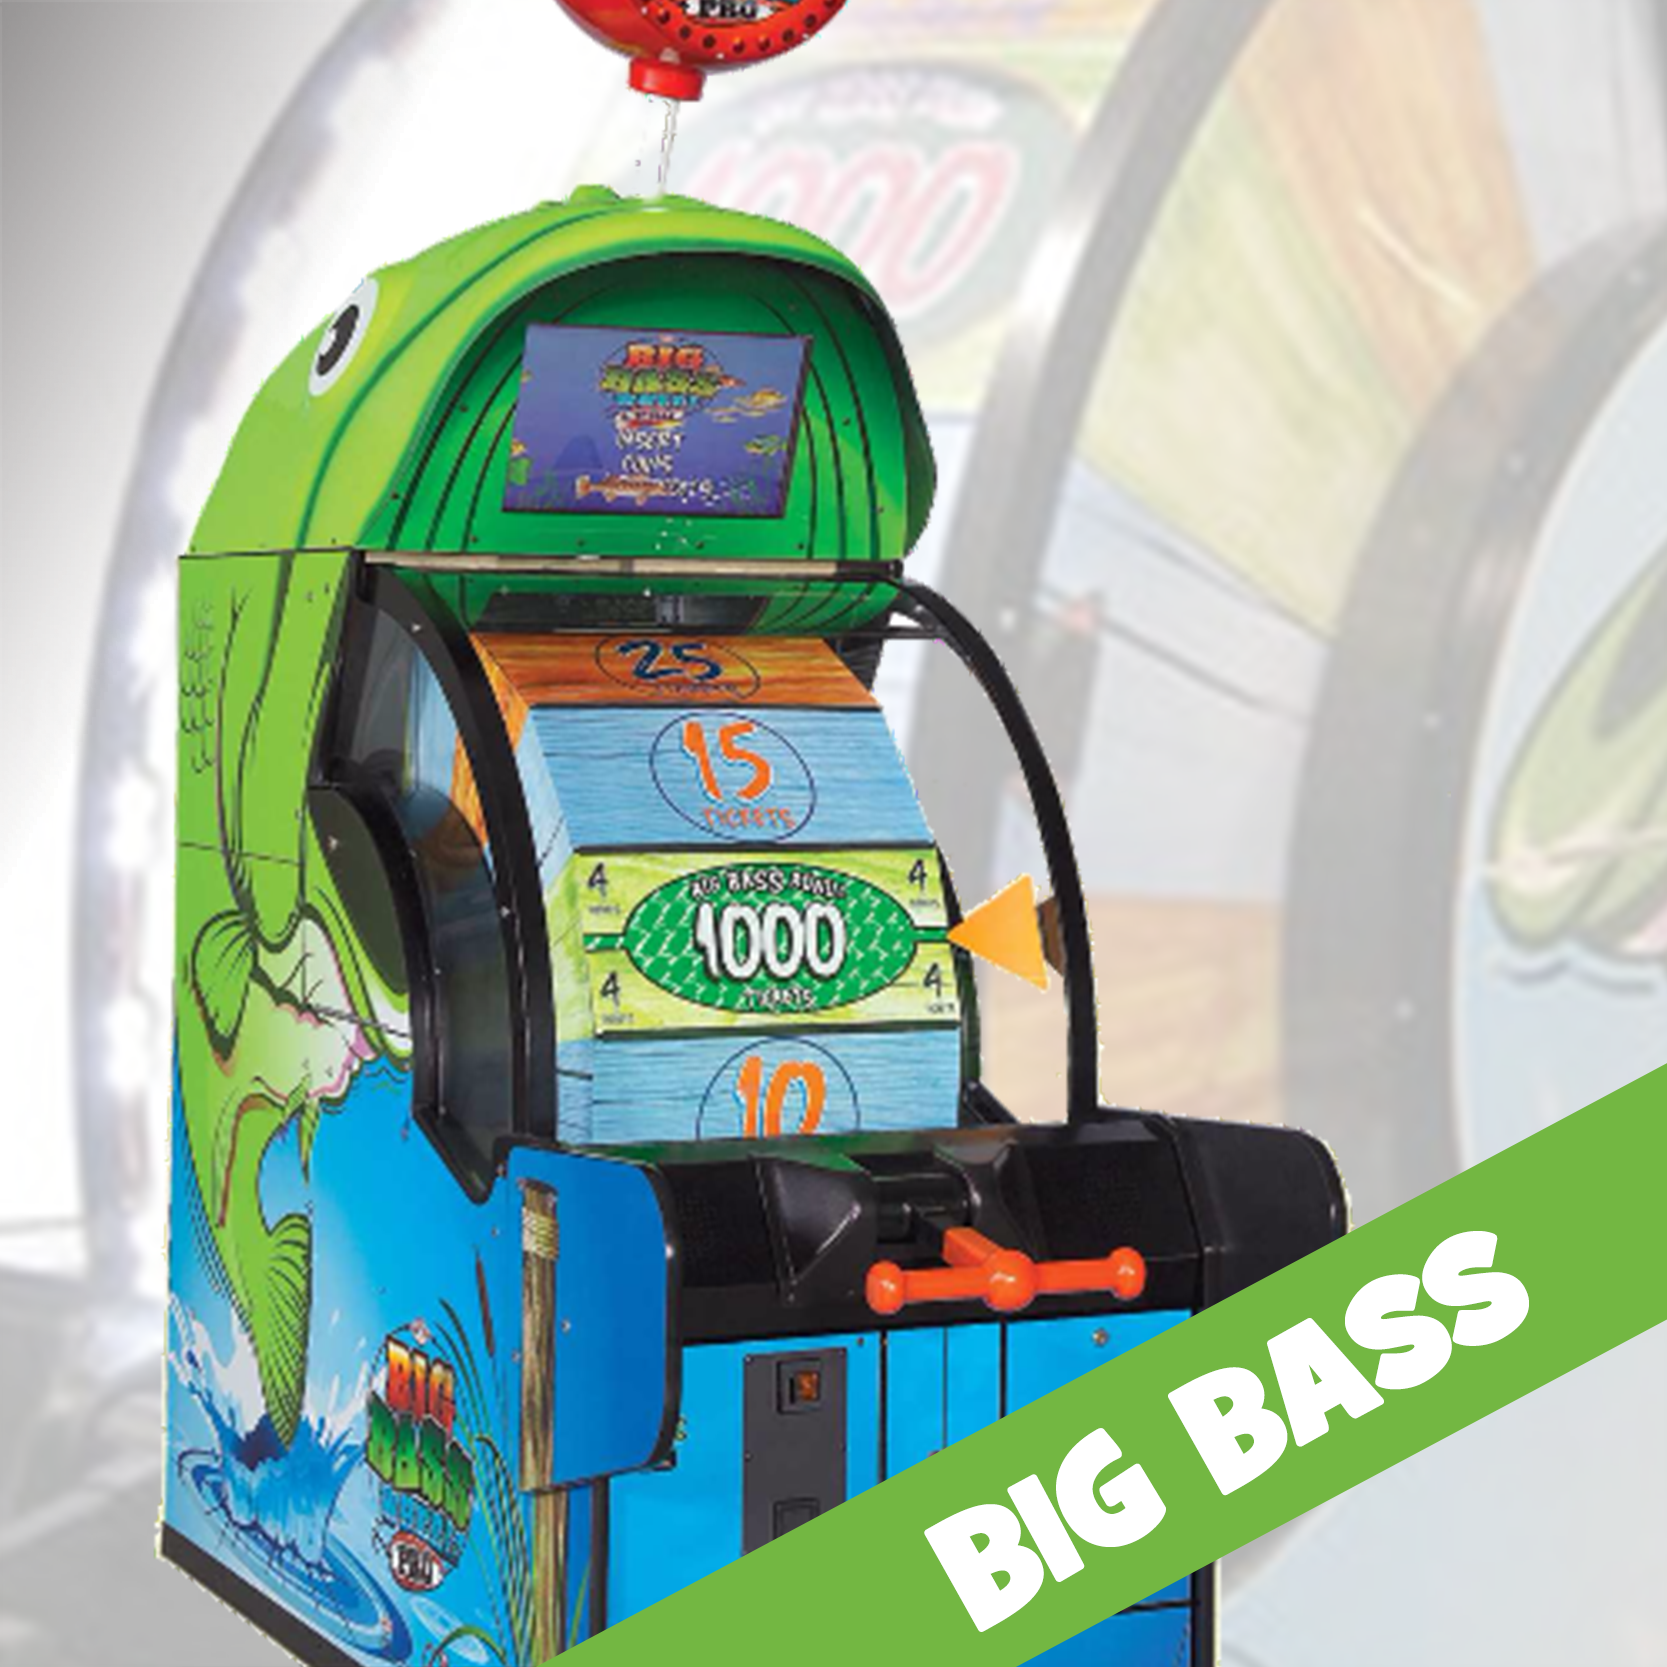 Reel in the Fun! step up and pull the handle to spin the big wheel. When the wheel stops, players are rewarded with tickets. For an even bigger catch, TRY AND LAND ON THE MAJOR PRIZE OF 1000 tickets for a perfect spin!